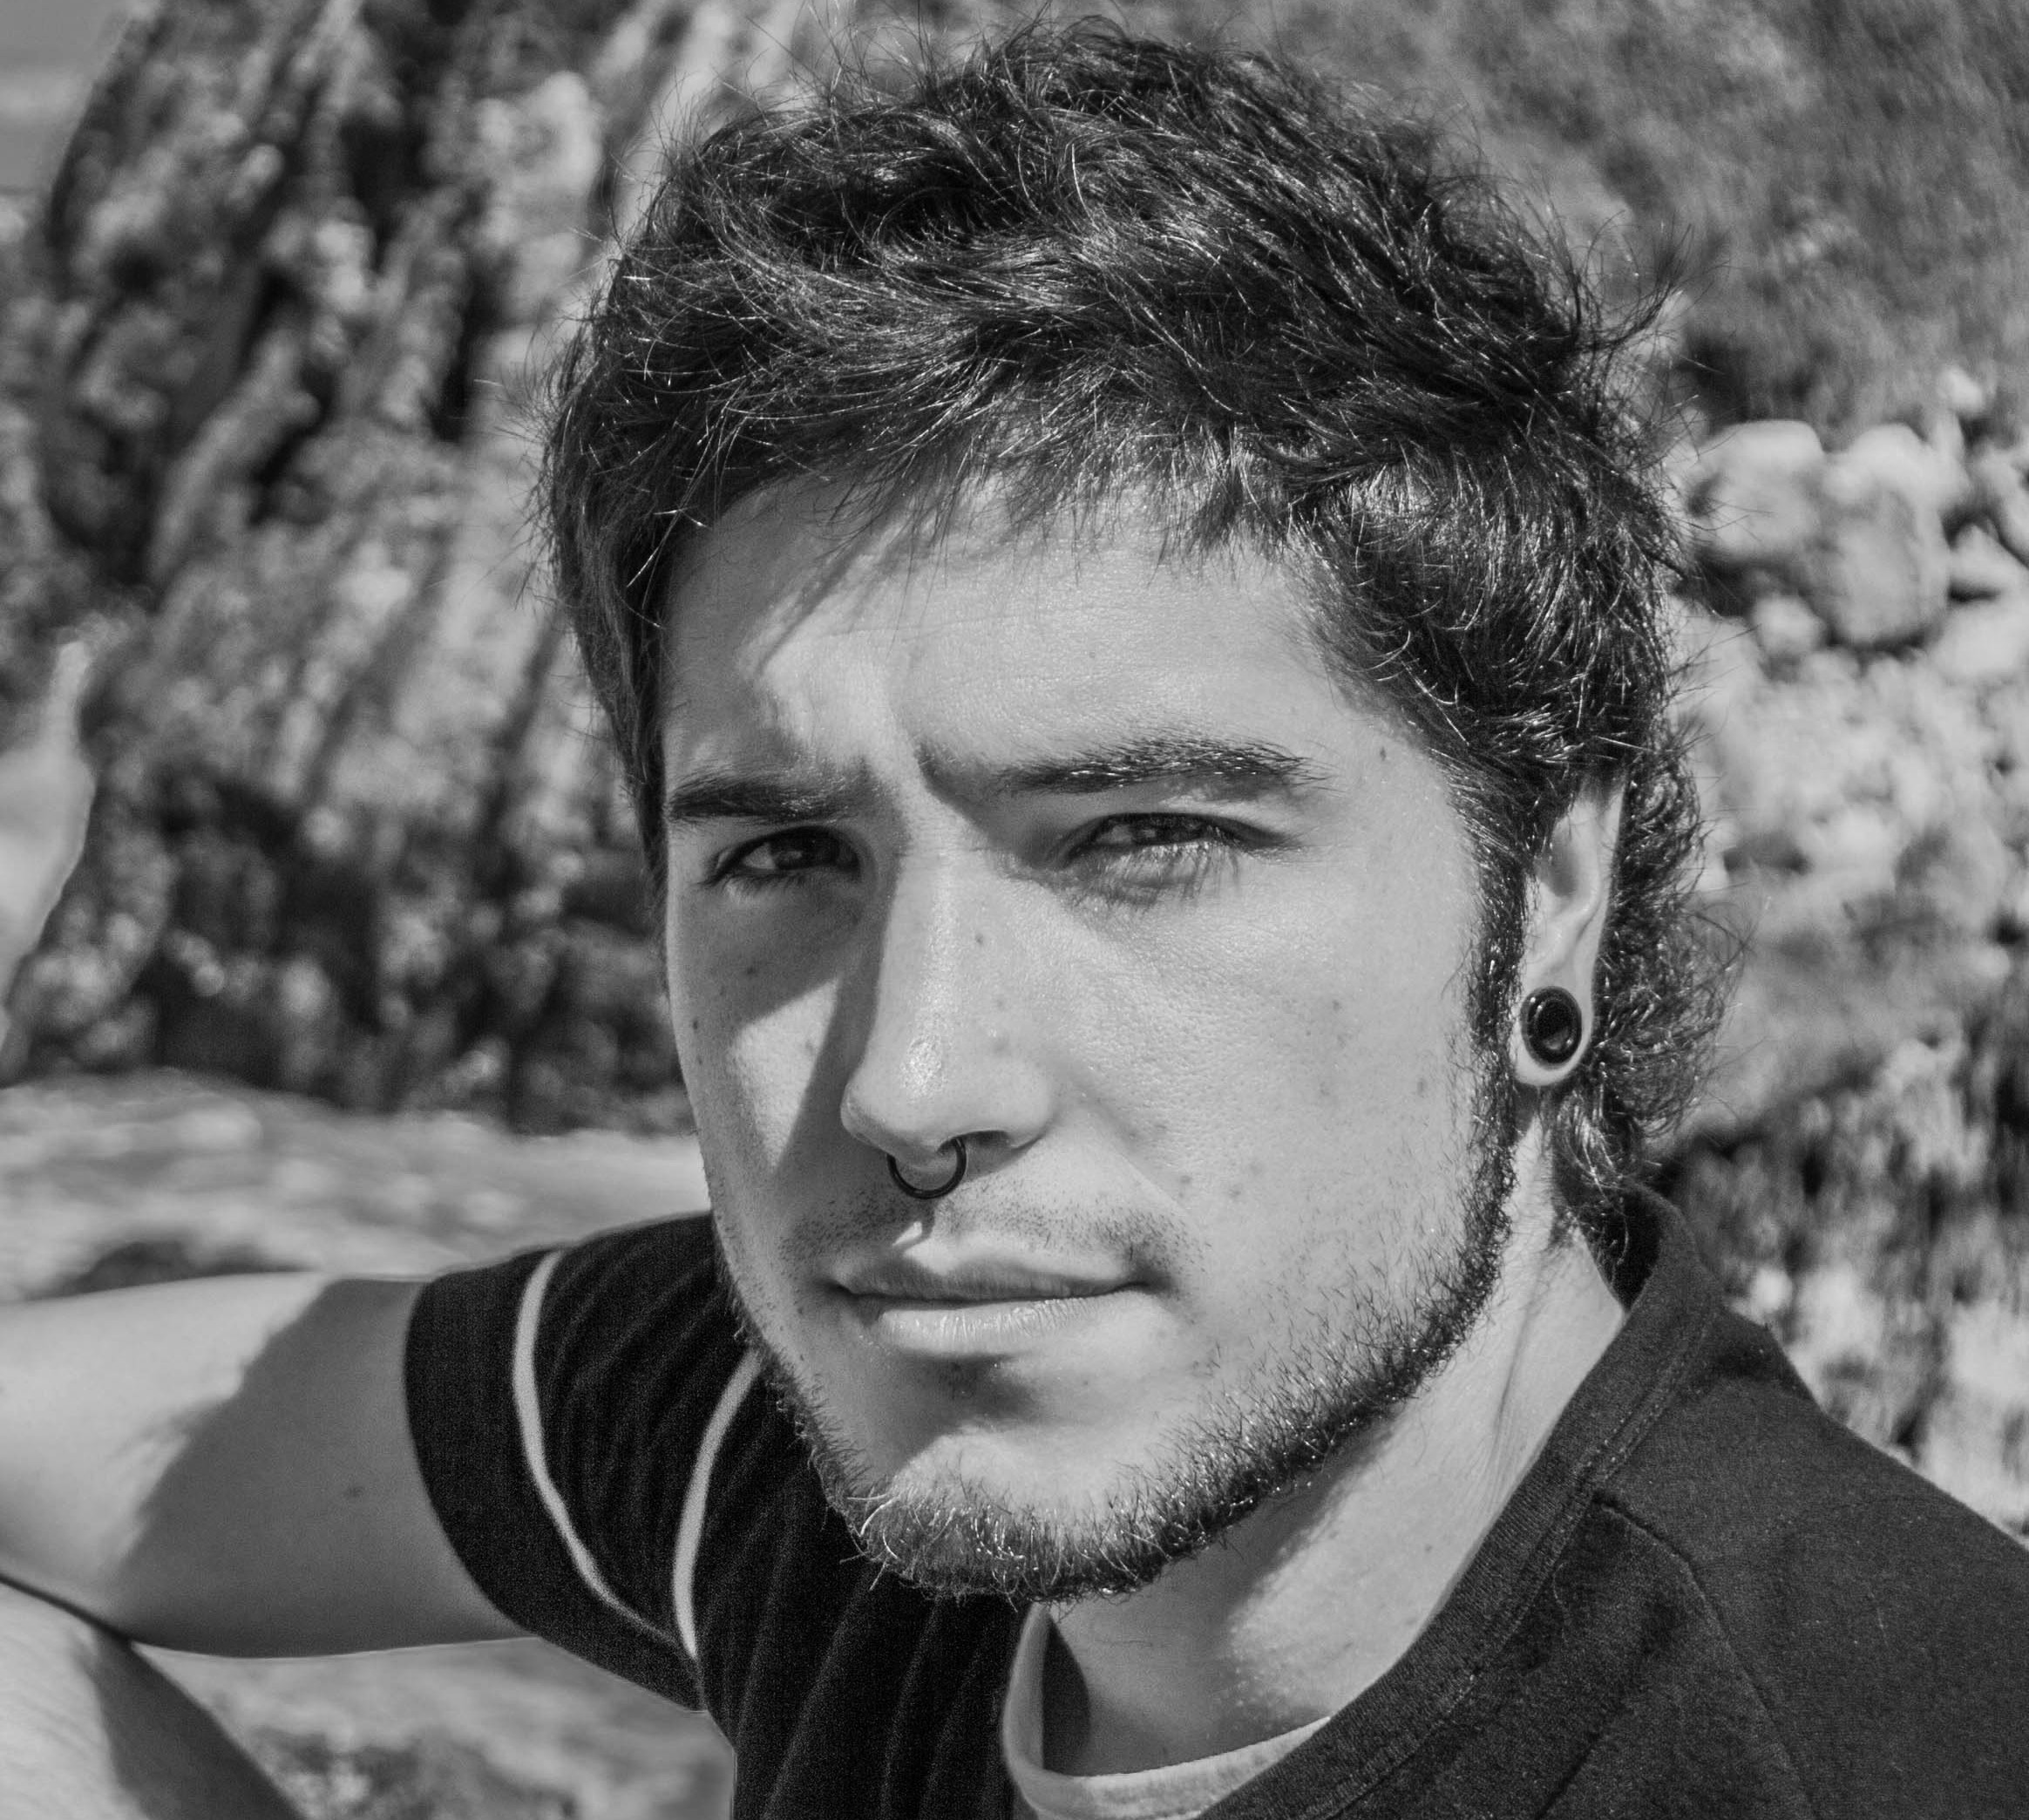 INTERVIEW WITH EDITOR IKER BILBAO